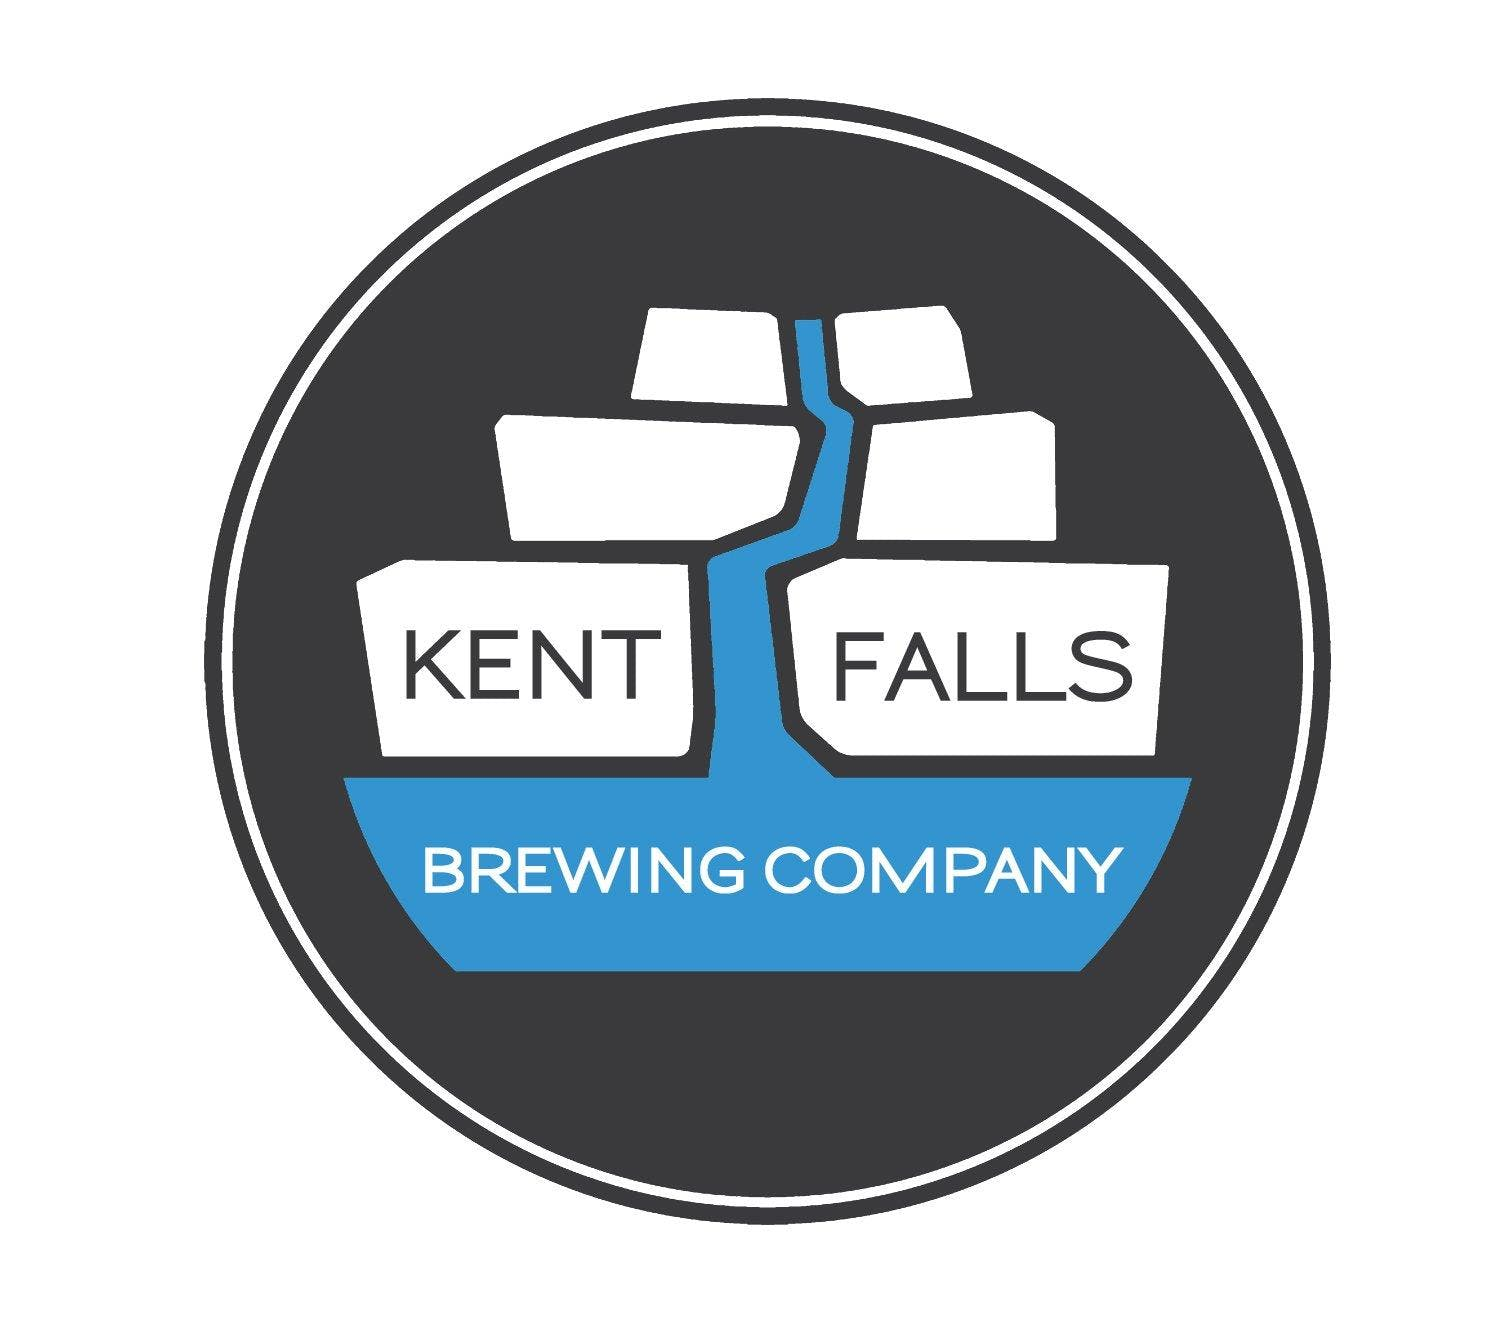 Kent Falls Brewing & Wilde Chutney 5 course v